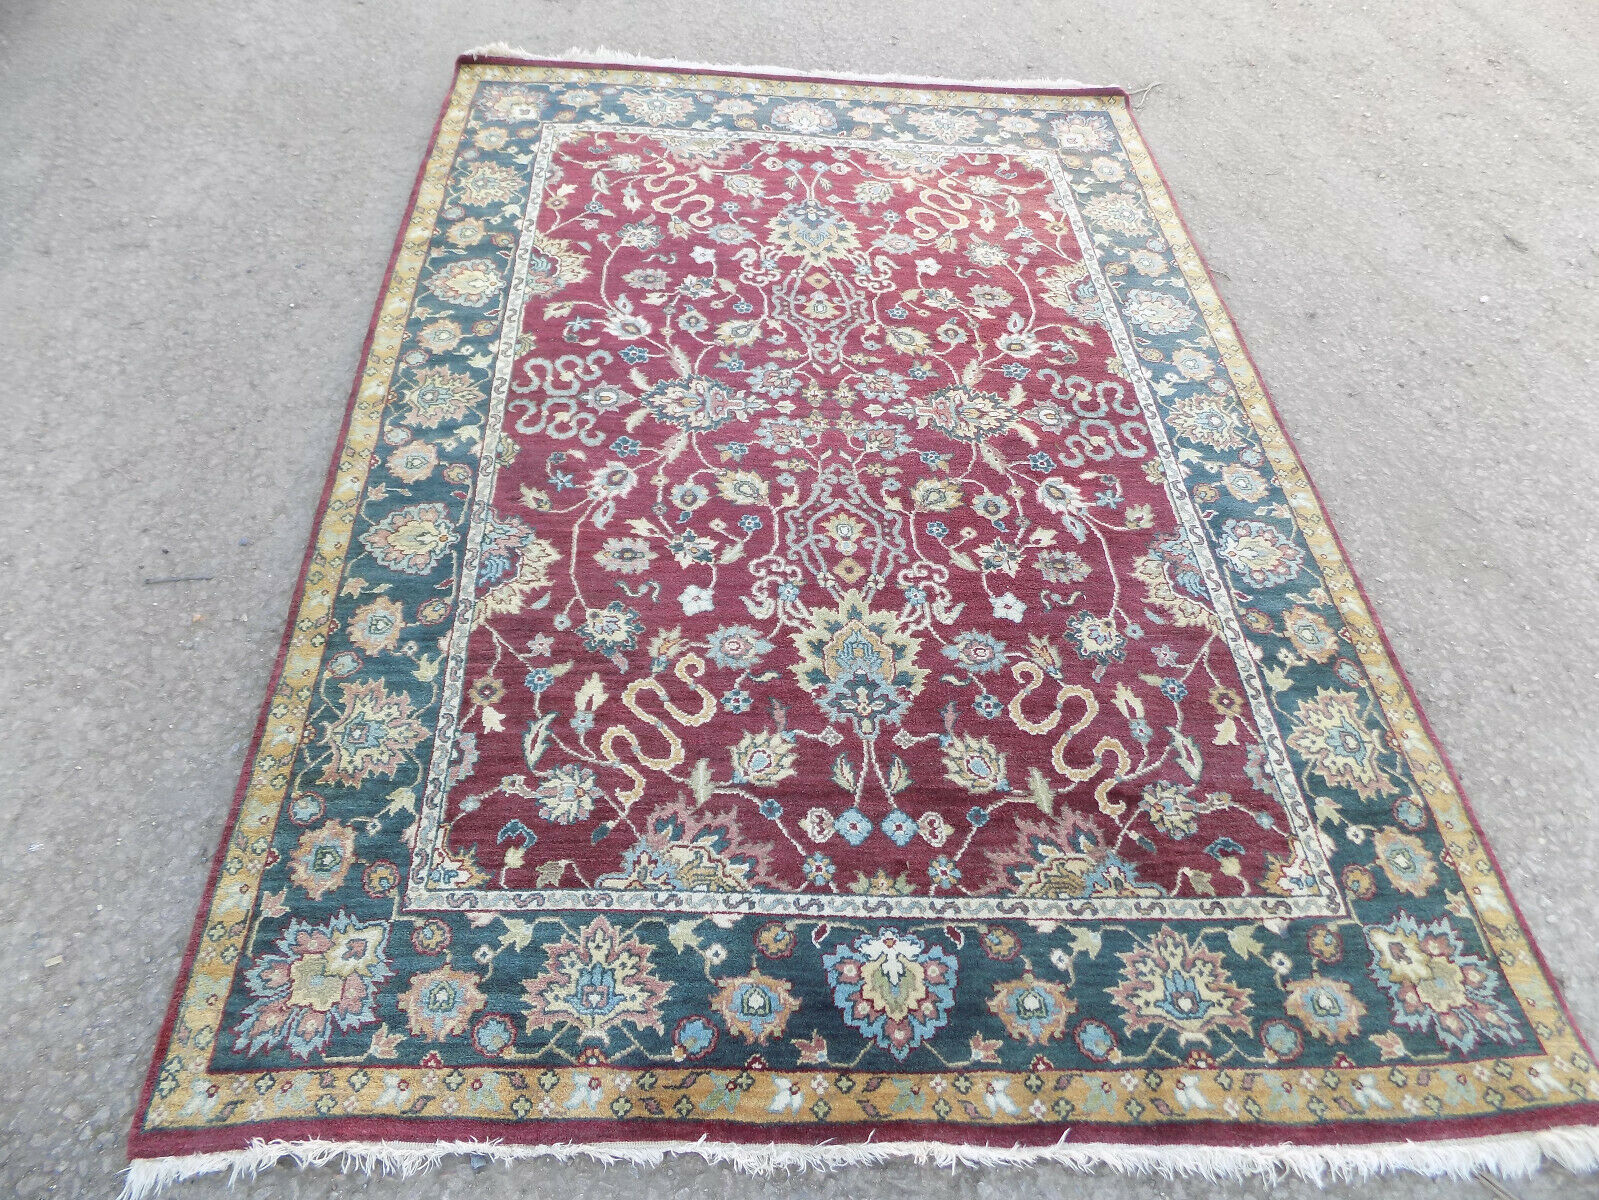 8 X 5 Large Rug Vintage Large Indian Floral Hand Made Wool Thick Pile Carpet